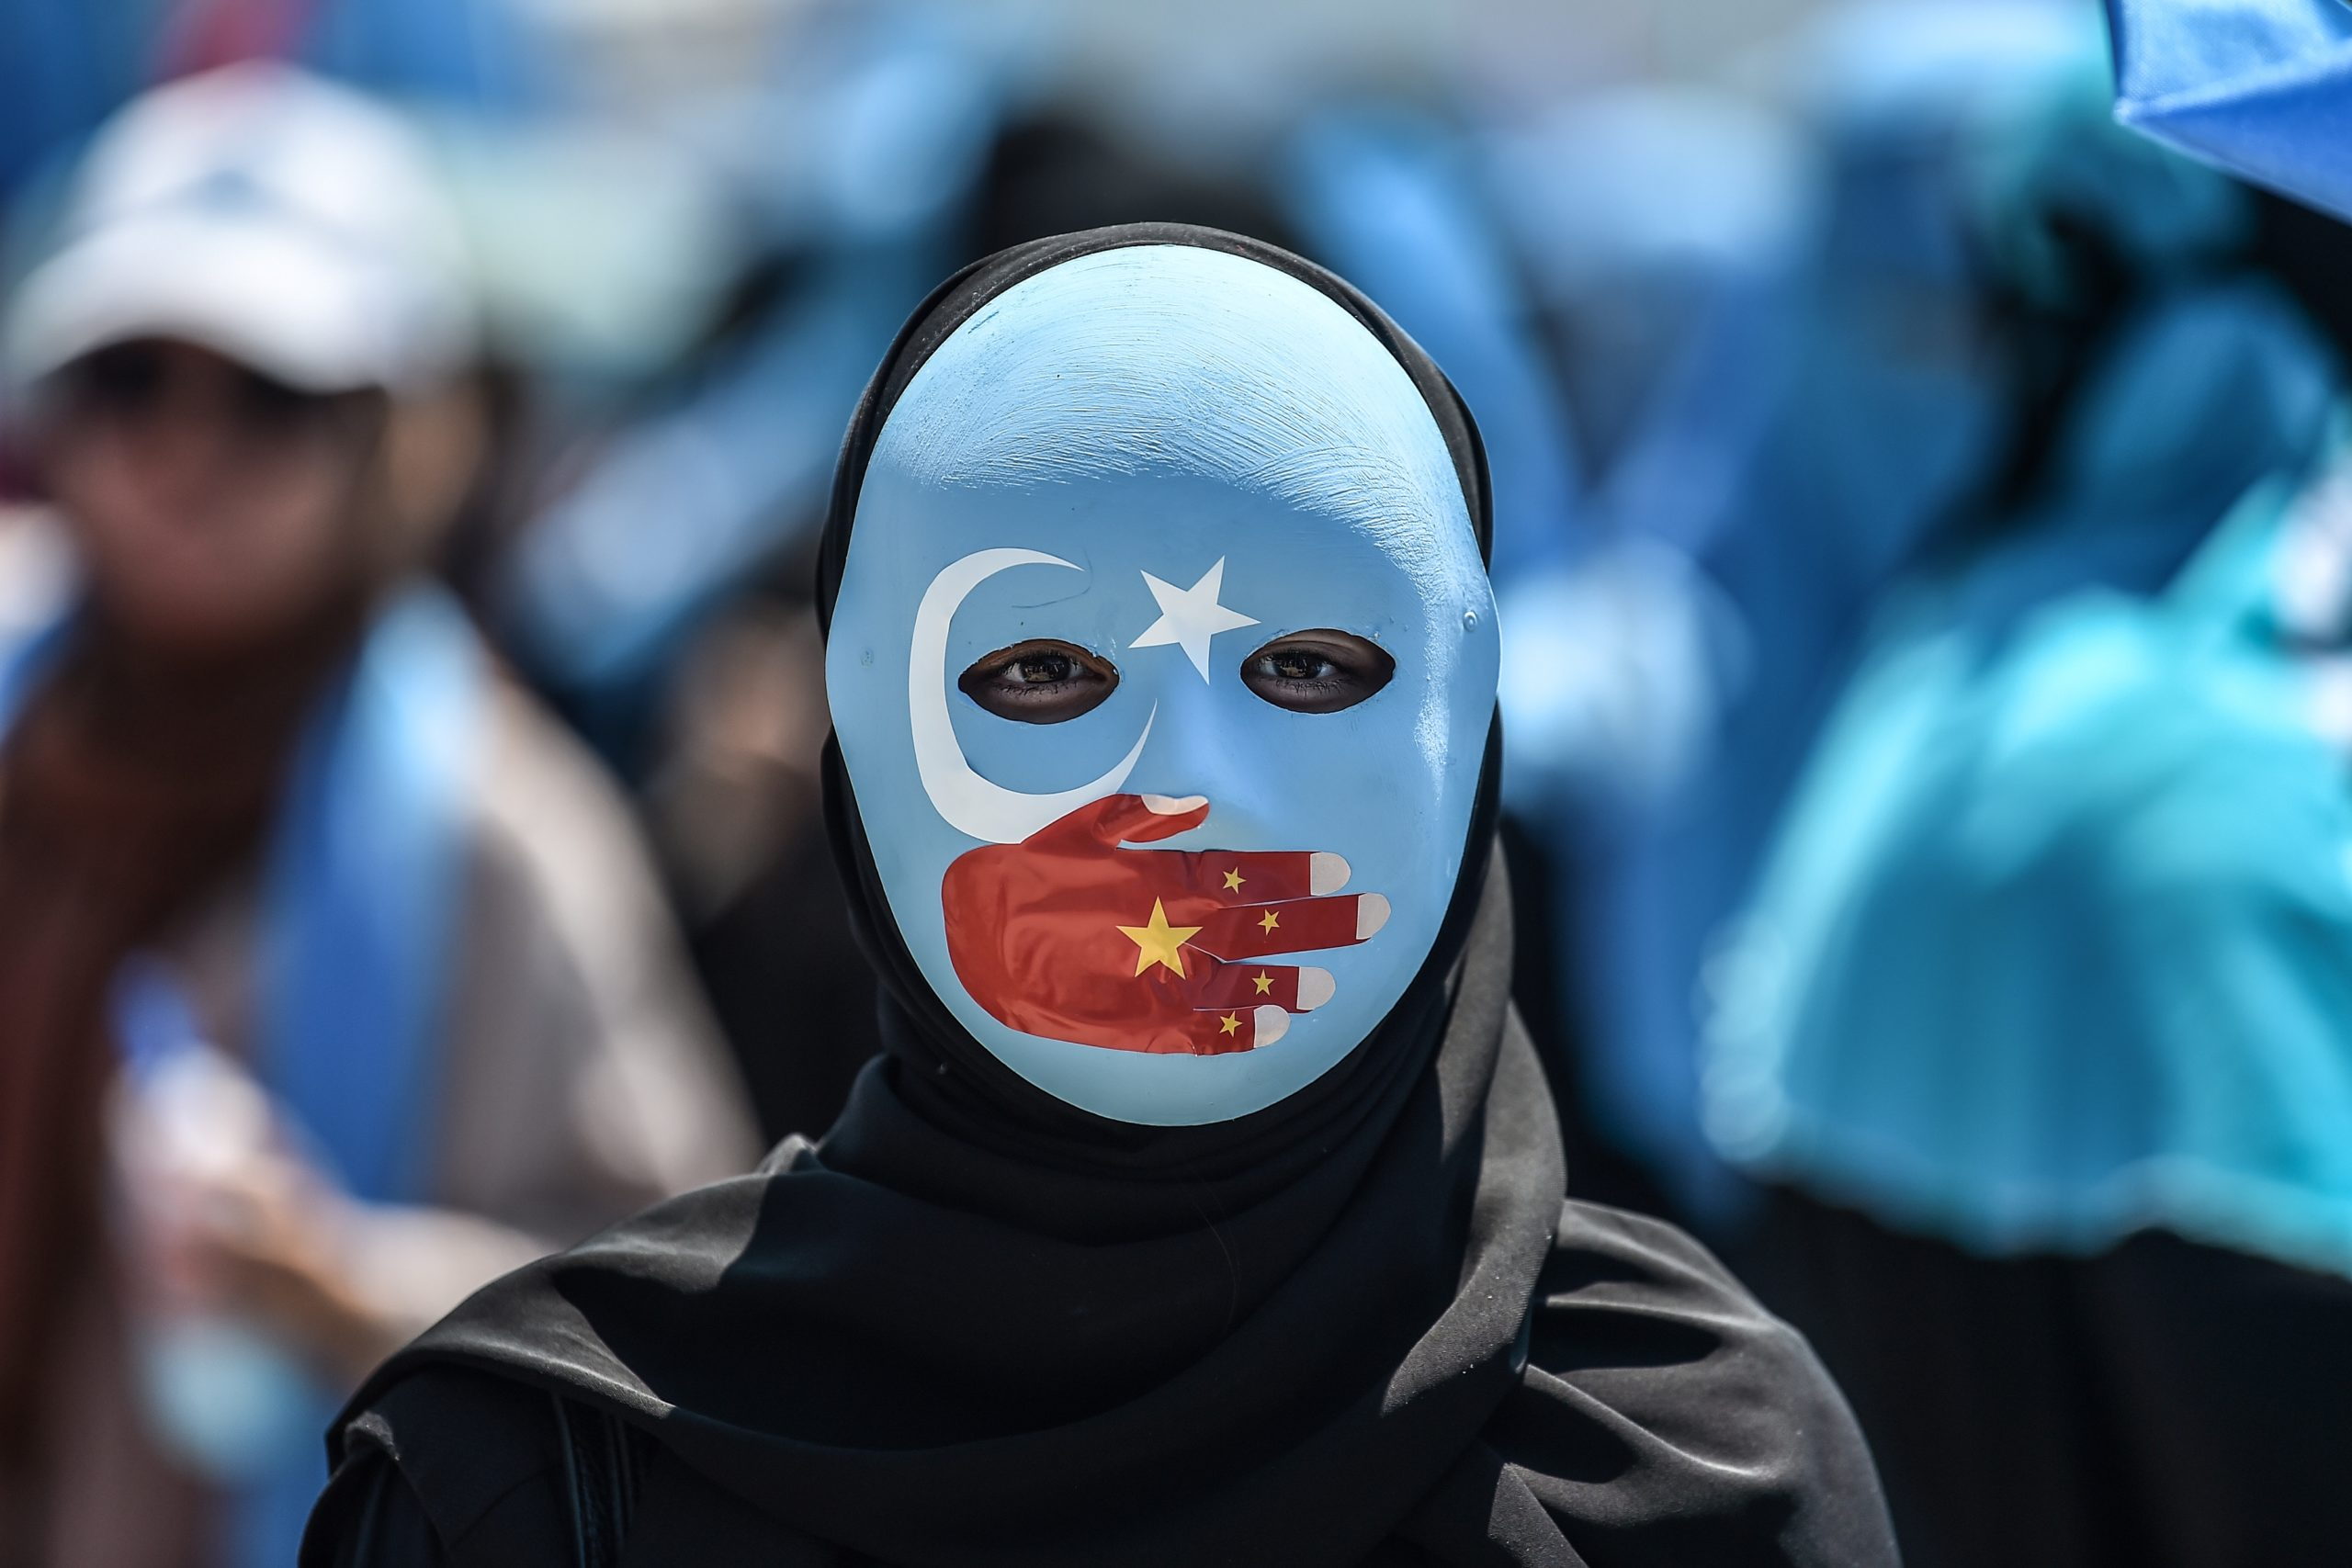 TOPSHOT - A demonstrator wearing a mask painted with the colours of the flag of East Turkestan and a hand bearing the colours of the Chinese flag attends a protest of supporters of the mostly Muslim Uighur minority and Turkish nationalists to denounce China's treatment of ethnic Uighur Muslims during a deadly riot in July 2009 in Urumqi, in front of the Chinese consulate in Istanbul, on July 5, 2018. - Nearly 200 people died during a series of violent riots that broke out on July 5, 2009 over several days in Urumqi, the capital city of the Xinjiang Uyghur Autonomous Region, in northwestern China, between Uyghurs and Han people. (Photo by OZAN KOSE / AFP) (Photo by OZAN KOSE/AFP via Getty Images)